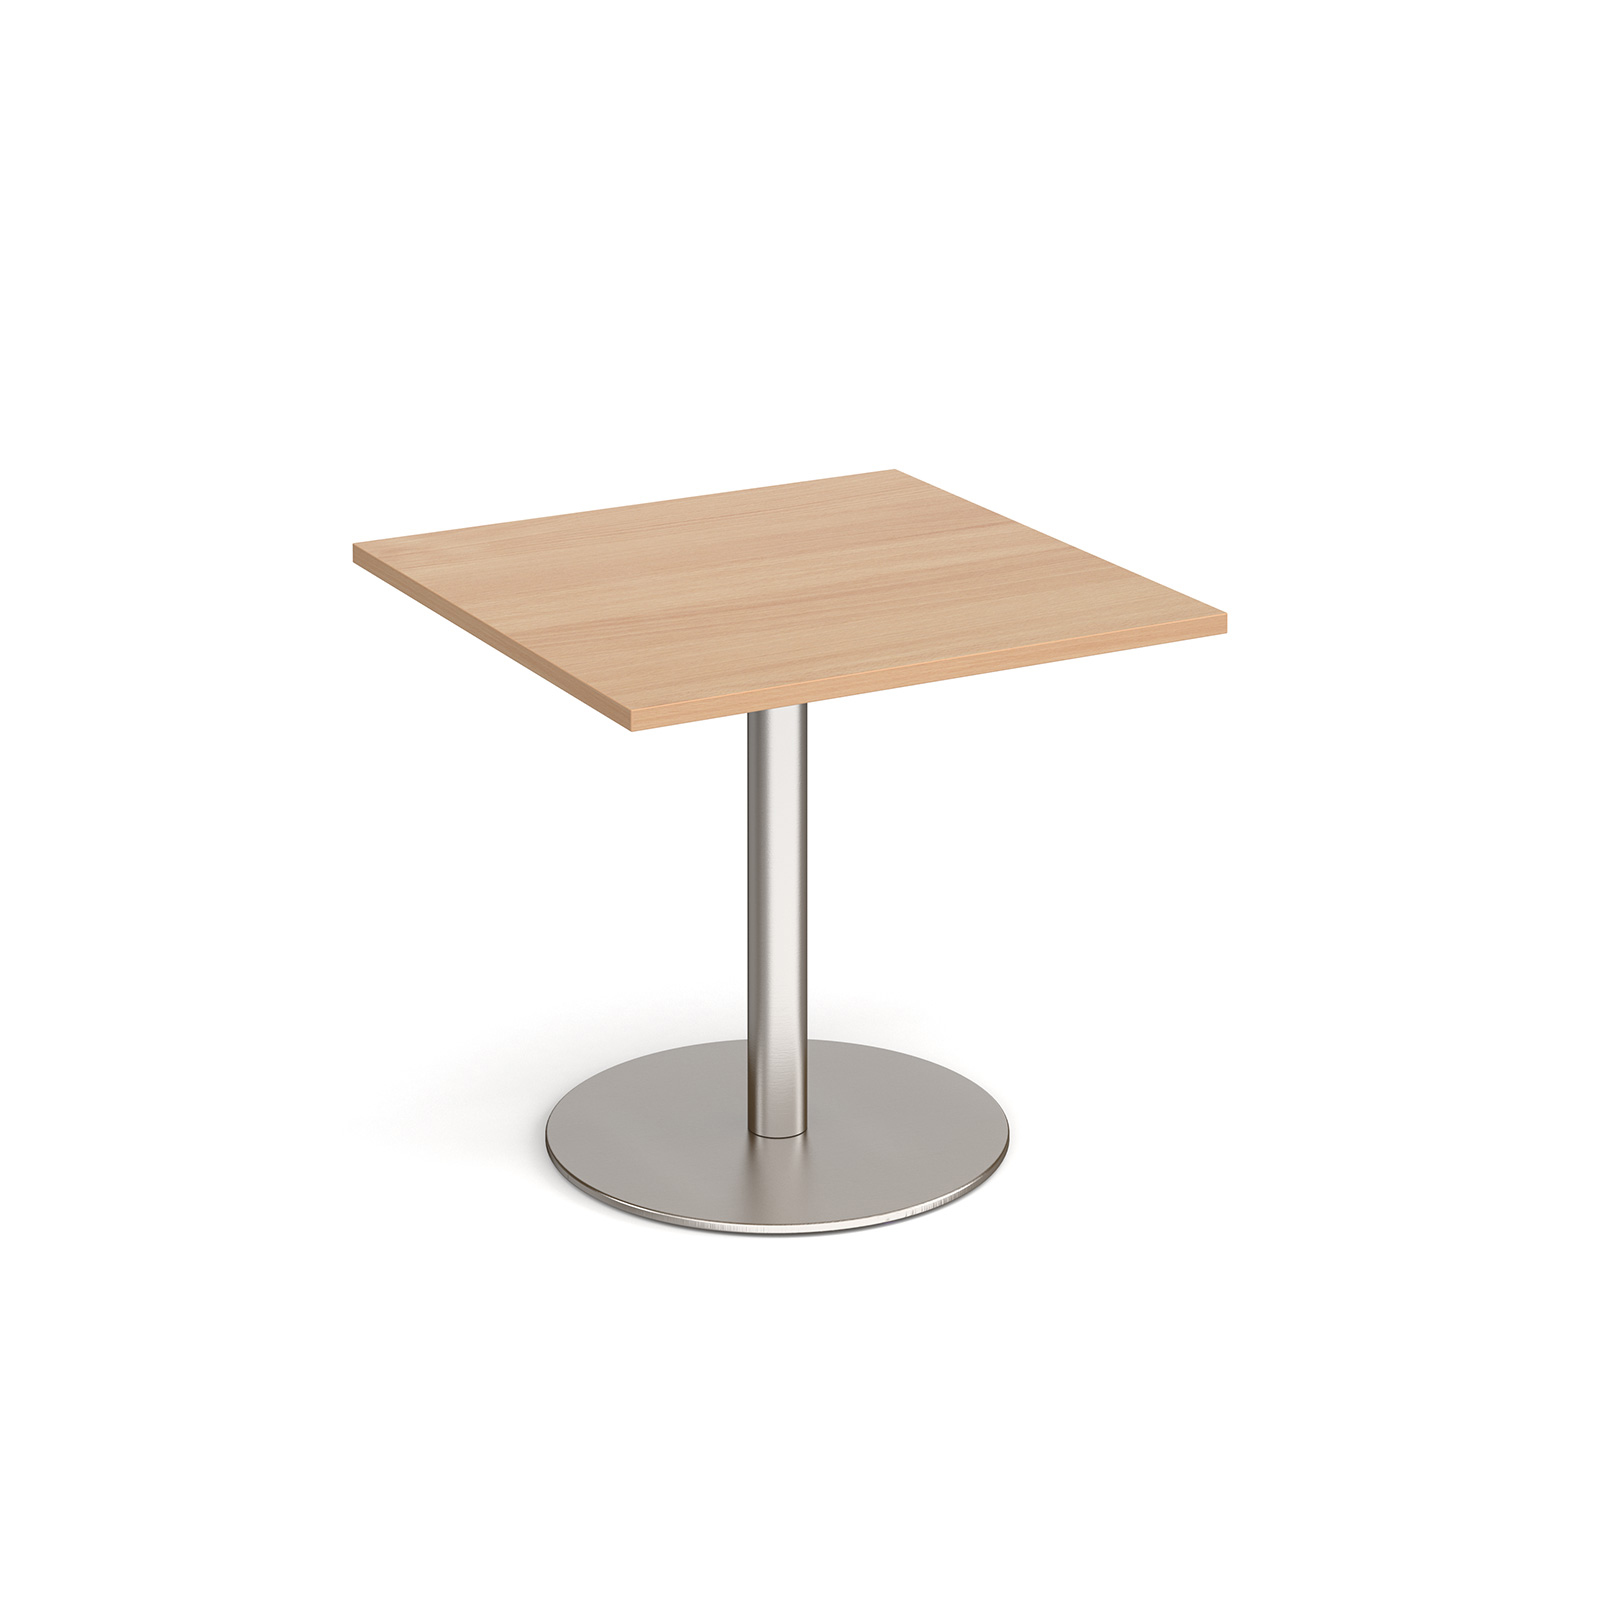 Canteen / Dining Monza square dining table with flat round base